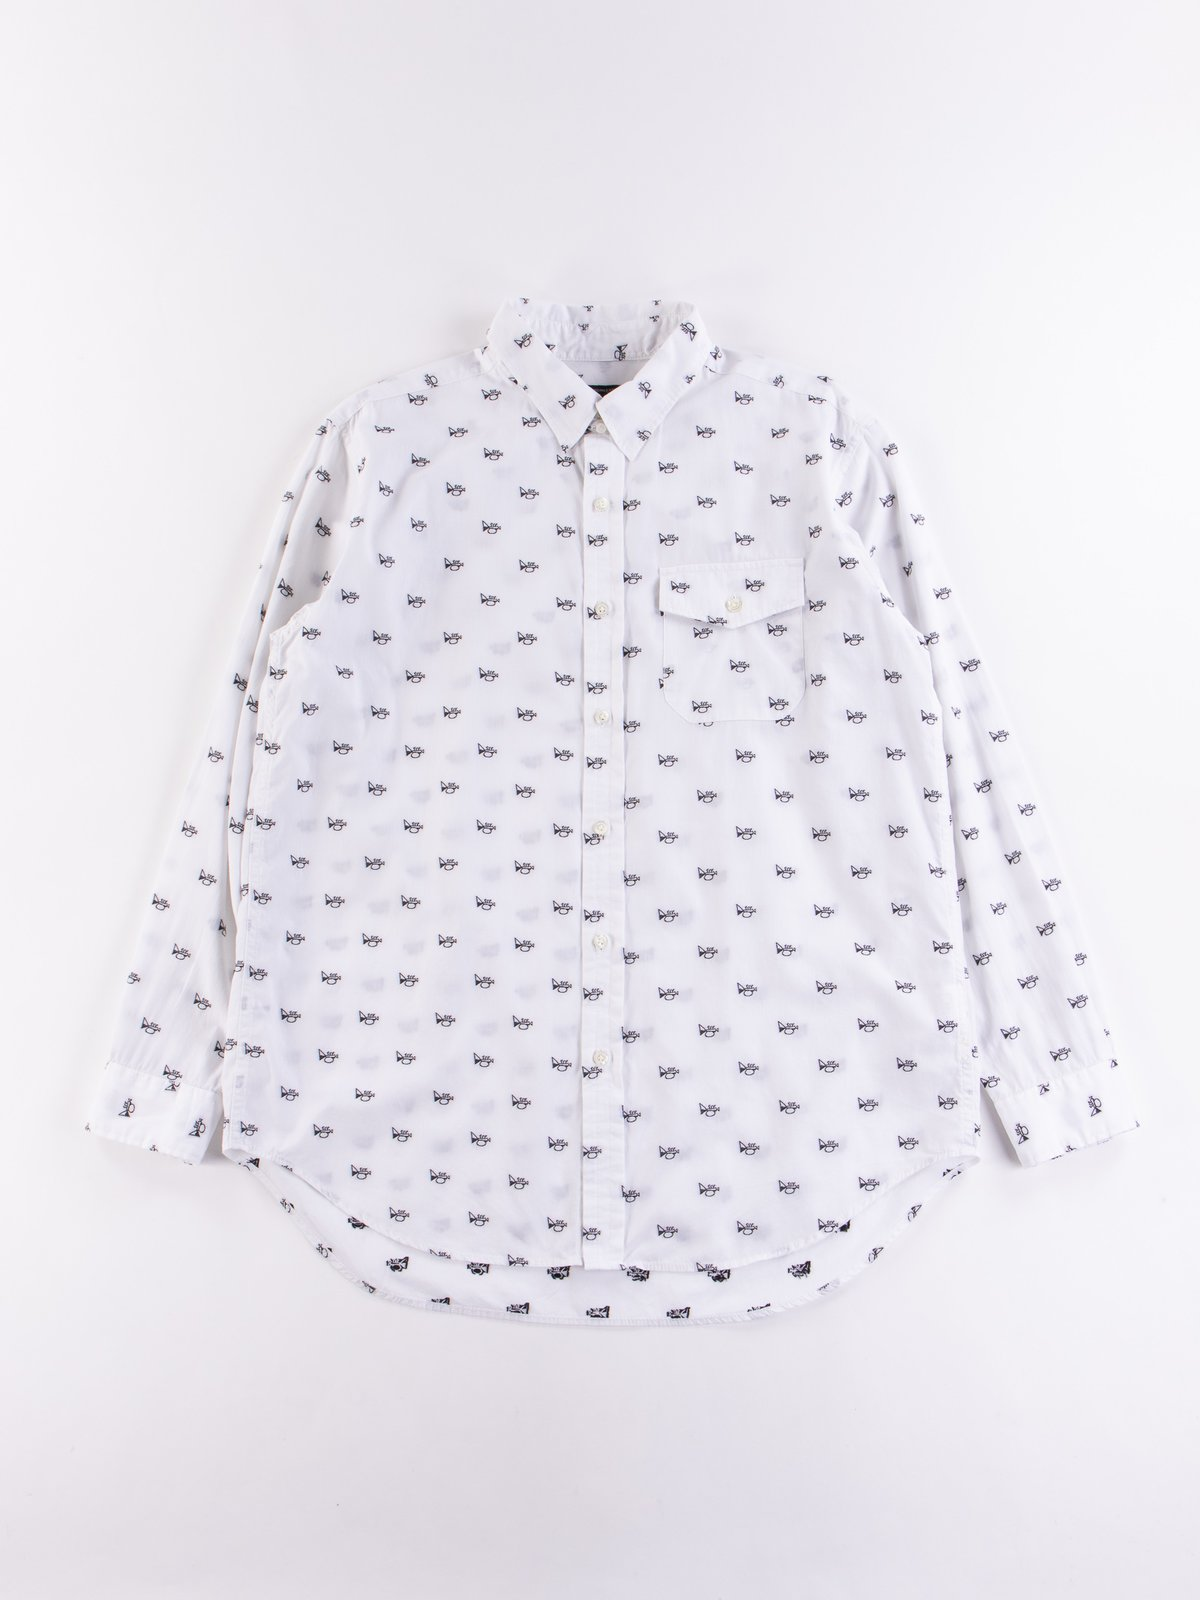 White Trumpet Embroidery Broadcloth Tab Collar Shirt - Image 1